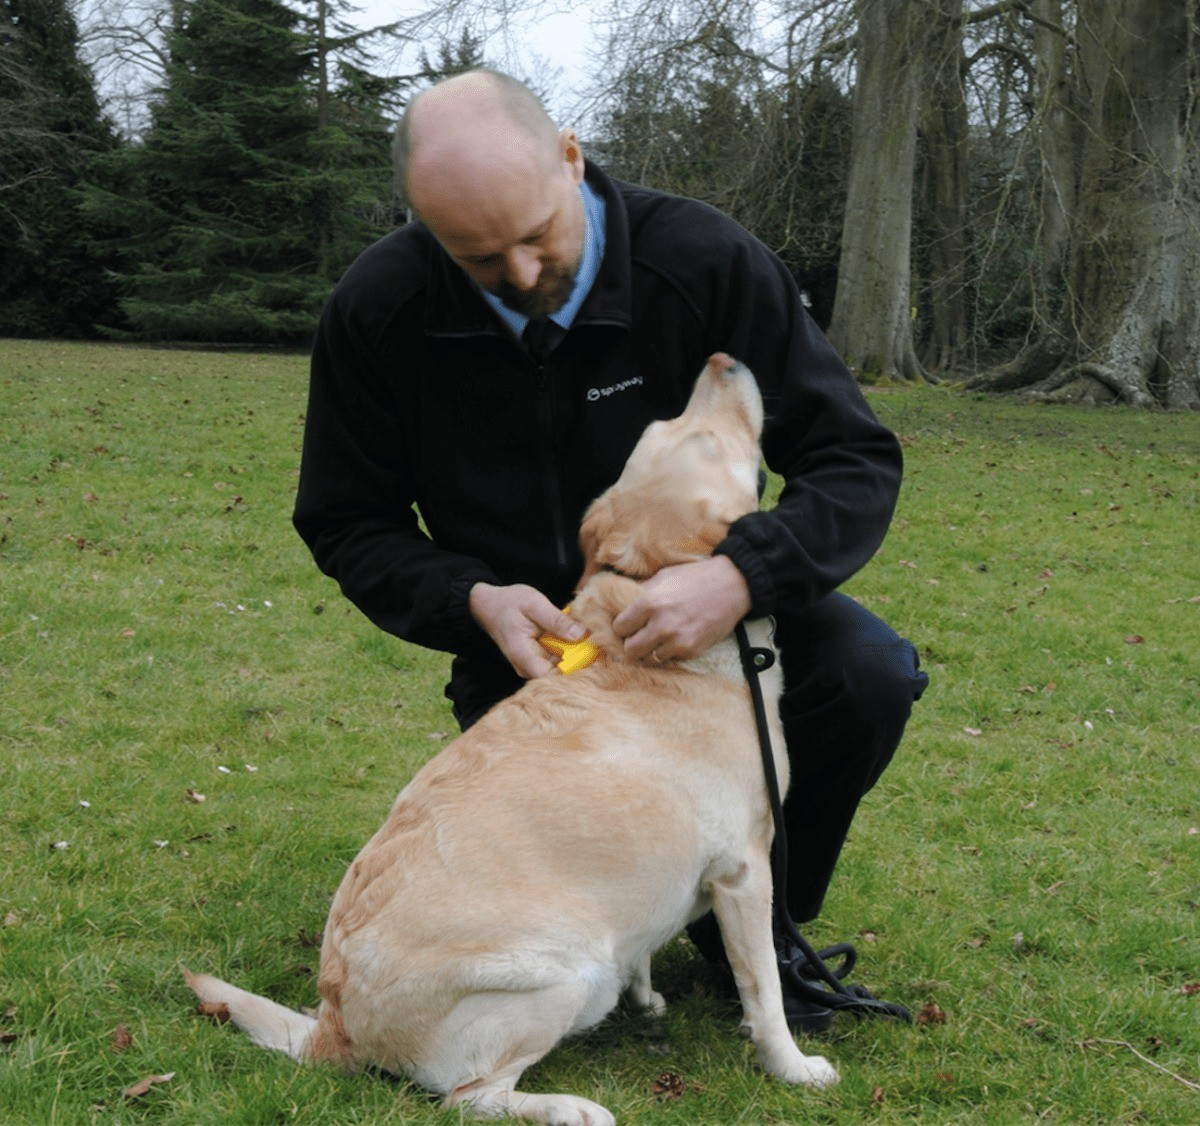 Council Offers Free Microchipping To Prepare Dog Owners For New Law